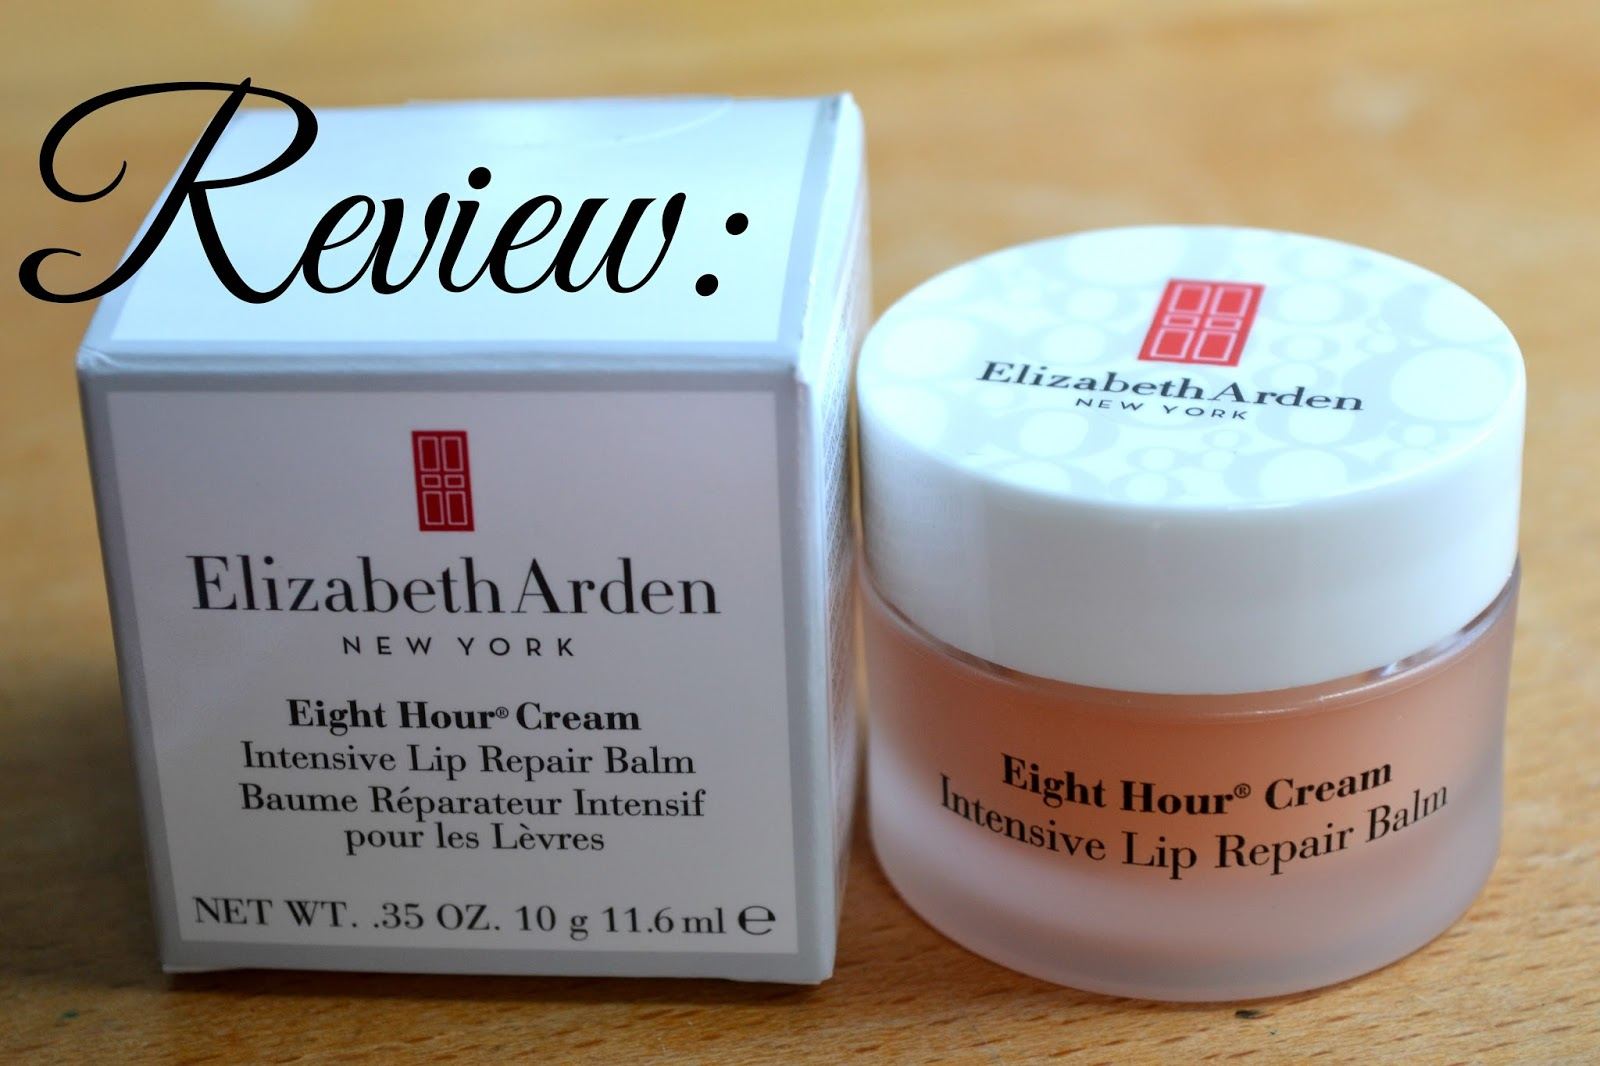 Elizabeth Arden Eight Hour Cream Intensive Lip Repair Balm!